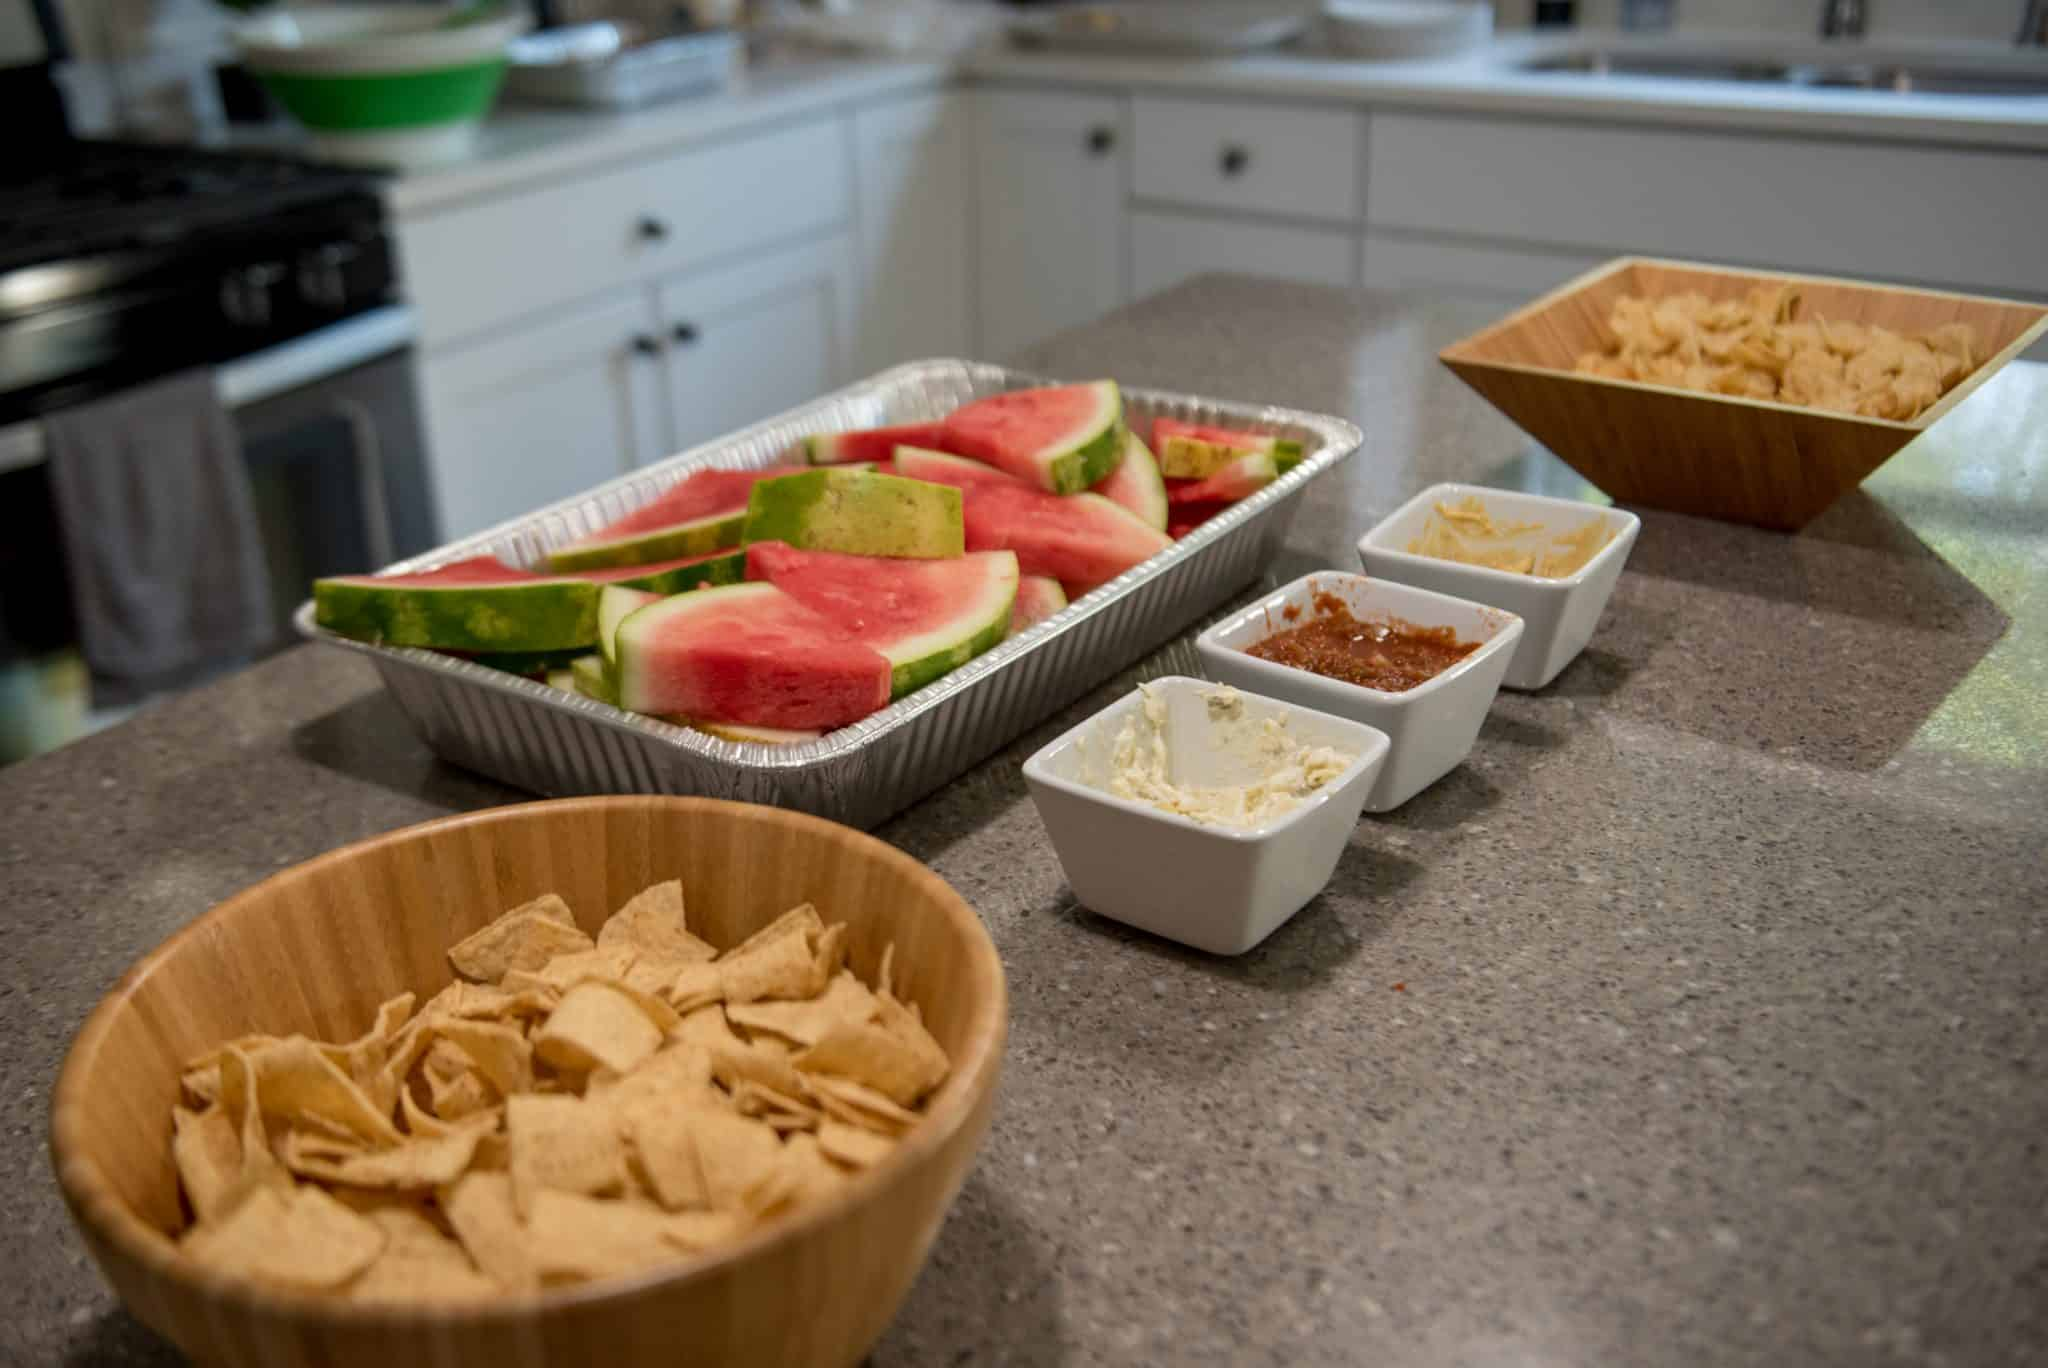 Chips and dip next to a bowl of watermelon on a countertop